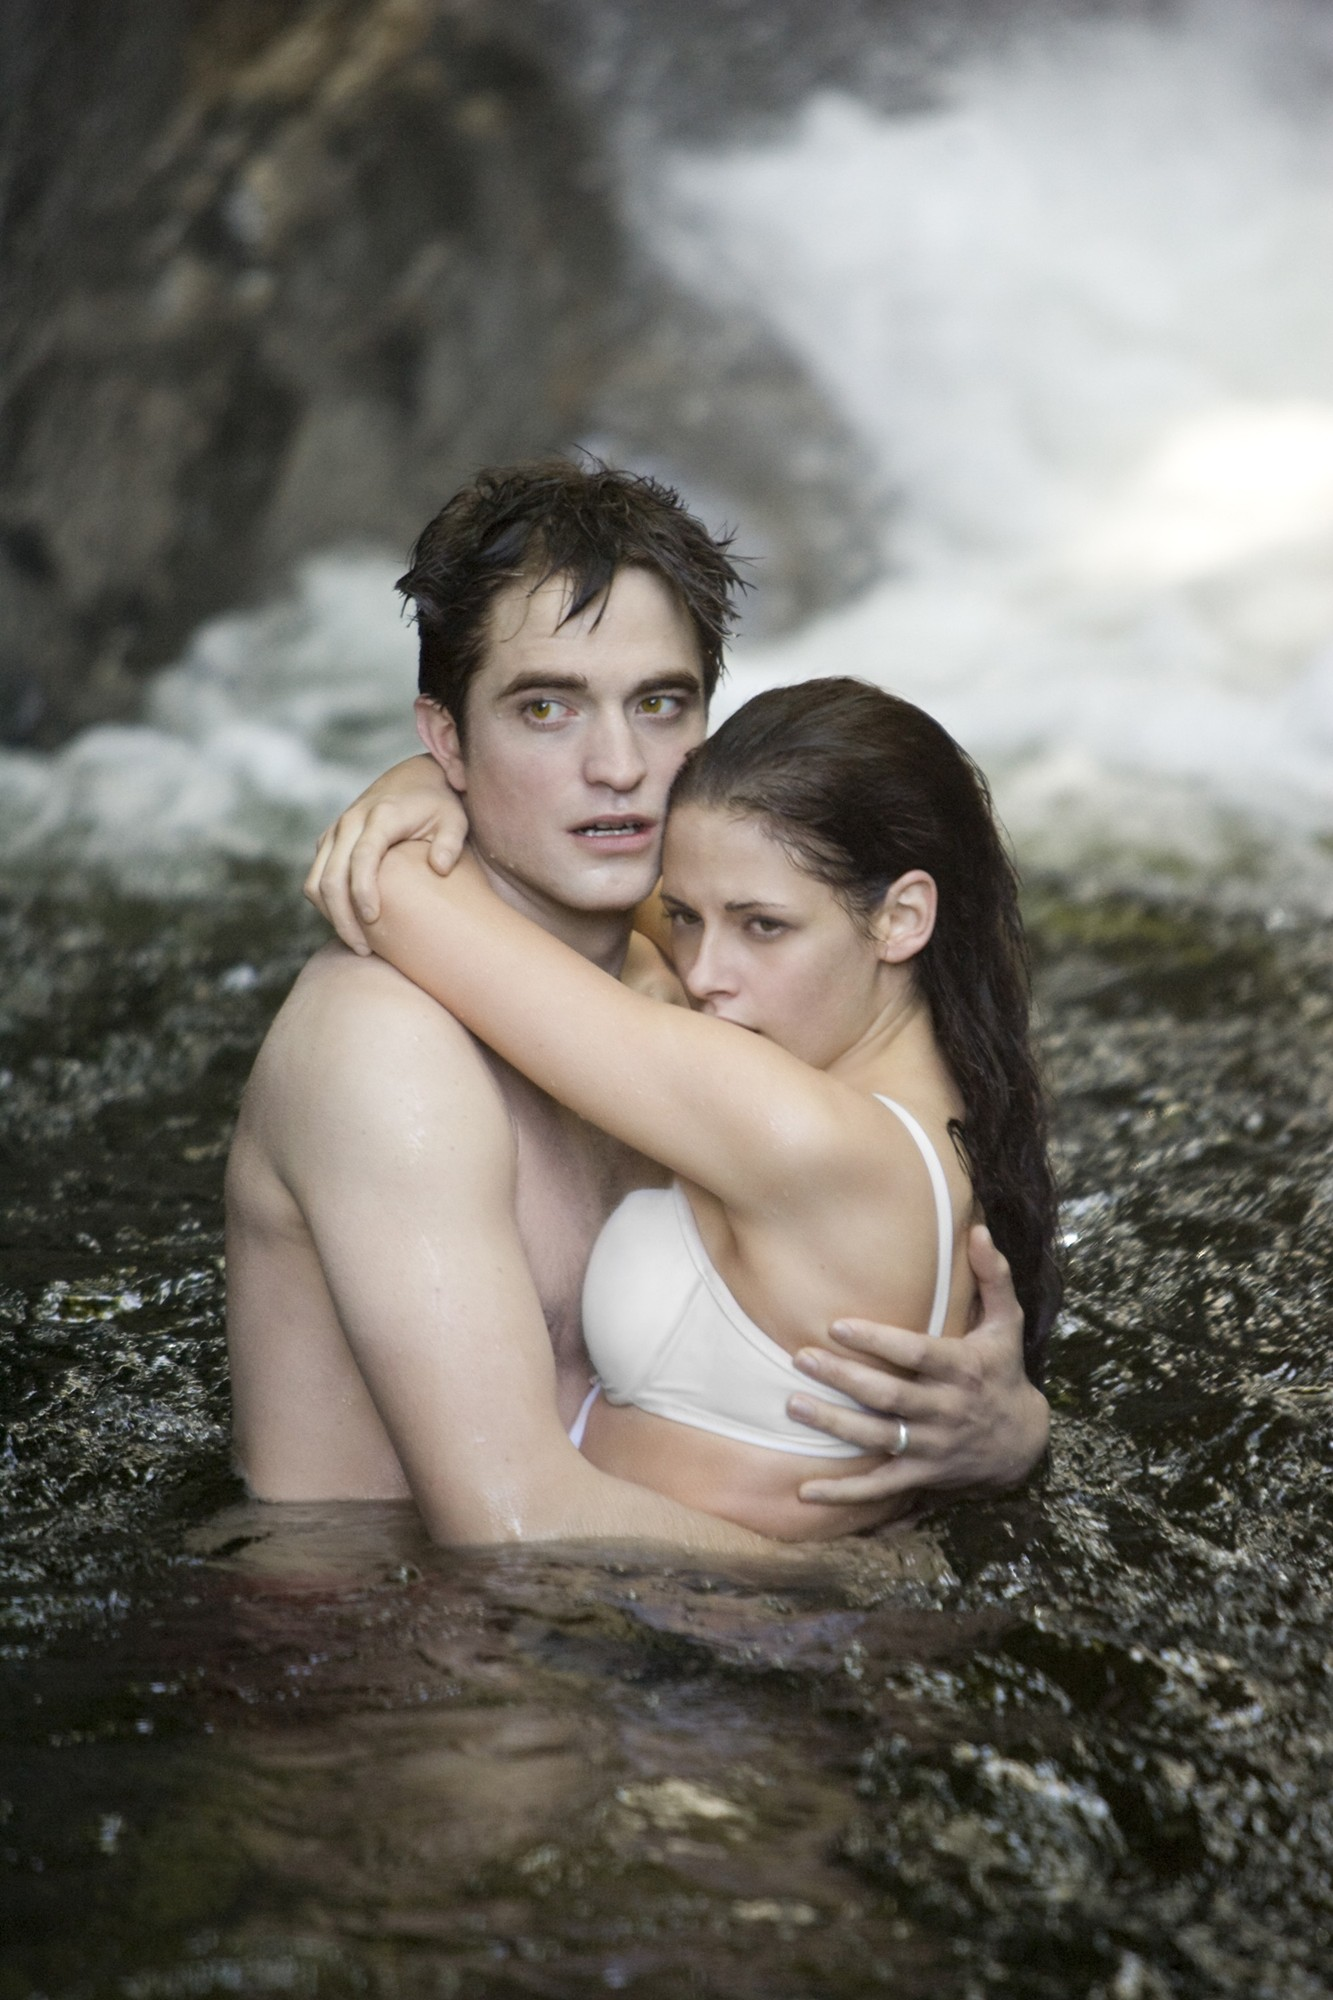 New 'Breaking Dawn Part I' Trailer: Wedding, Pregnancy and Battle With the Wolves